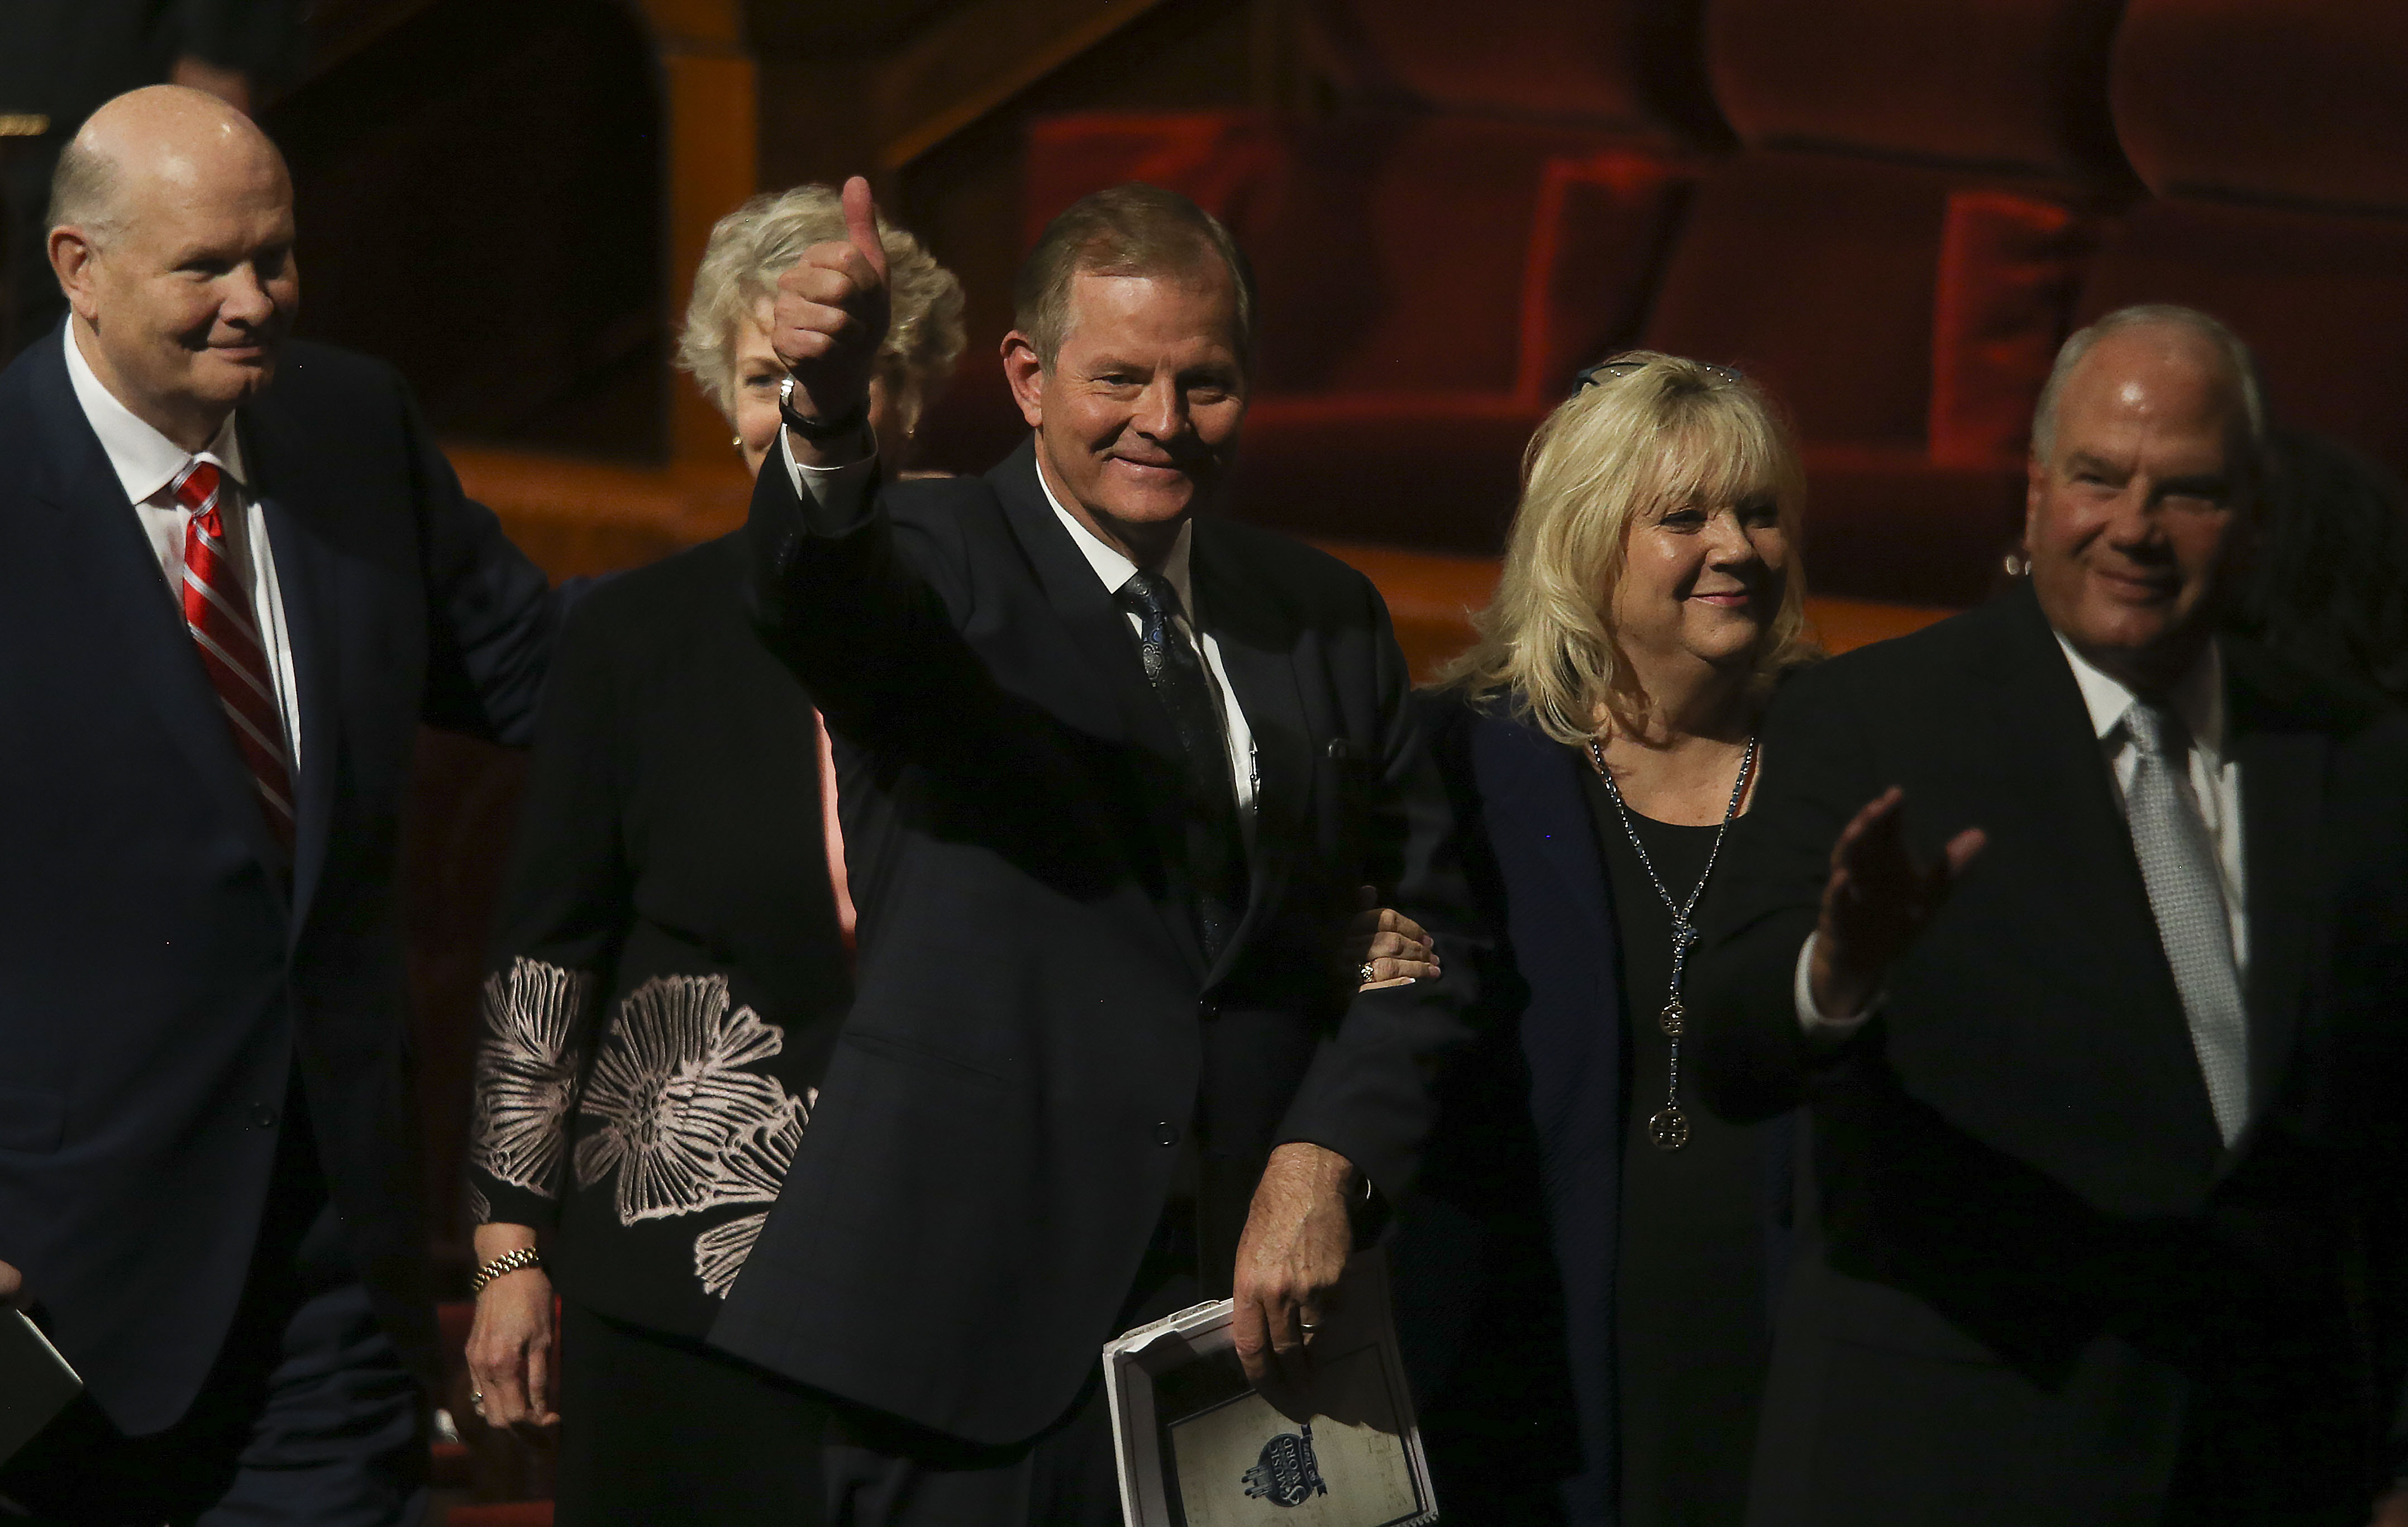 Elder Gary E. Stevenson of the Quorum of the Twelve Apostles, center, gives a thumbs-up with his wife, Lesa, as they leave the Sunday morning session of the 189th Semiannual General Conference of The Church of Jesus Christ of Latter-day Saints at the Conference Center in Salt Lake City on Sunday, Oct. 6, 2019.